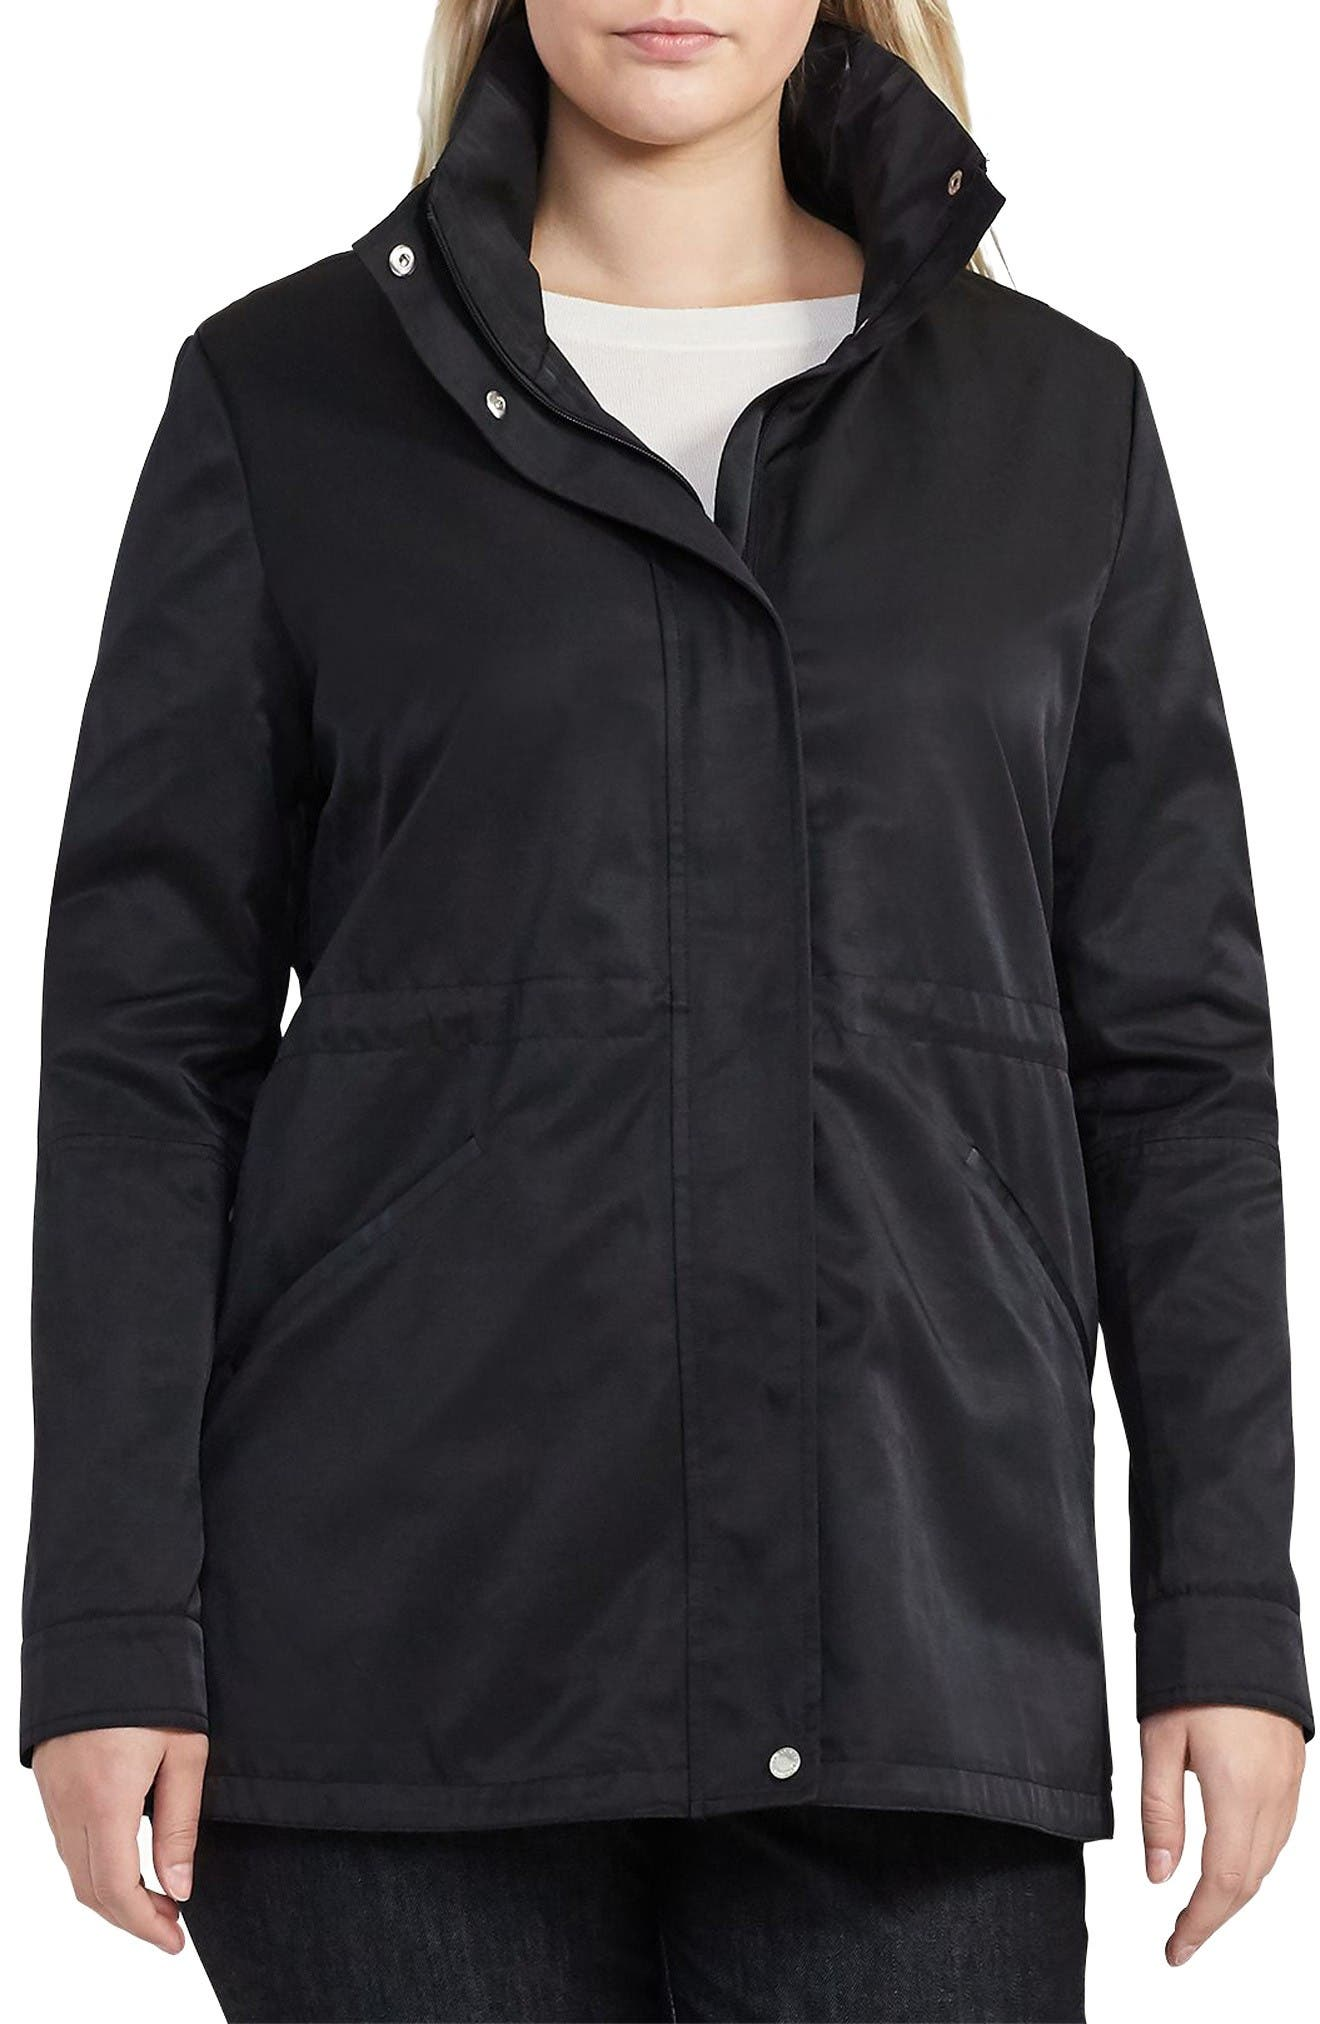 Alternate Image 1 Selected - Lauren Ralph Lauren Hooded Anorak (Plus Size)